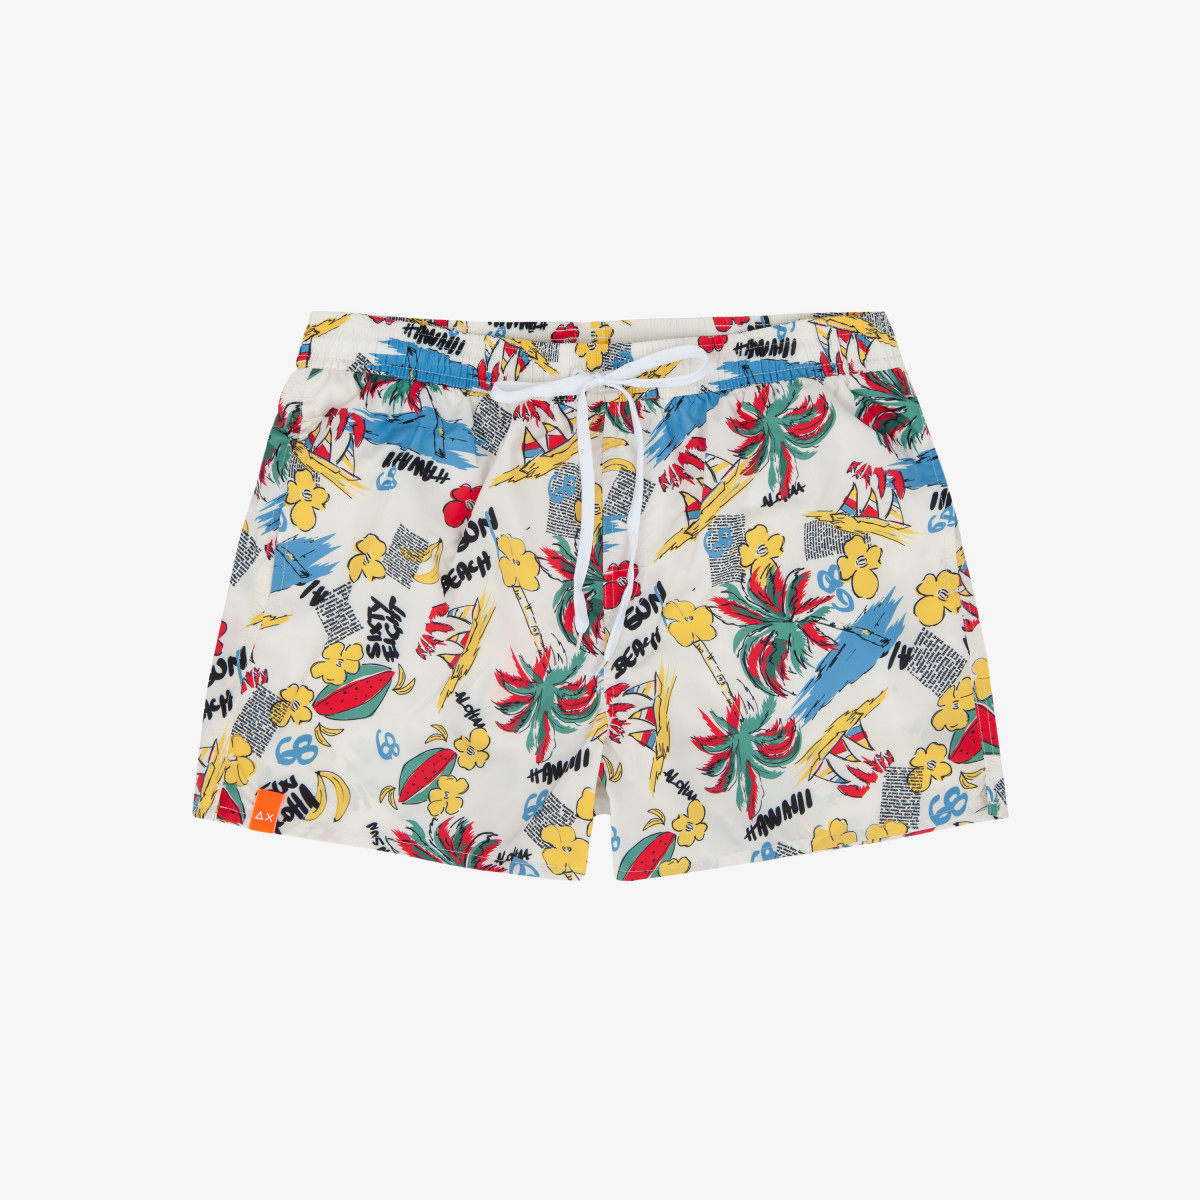 SWIM PANT HAWAII WORDS OVERALL PRINT WHITE